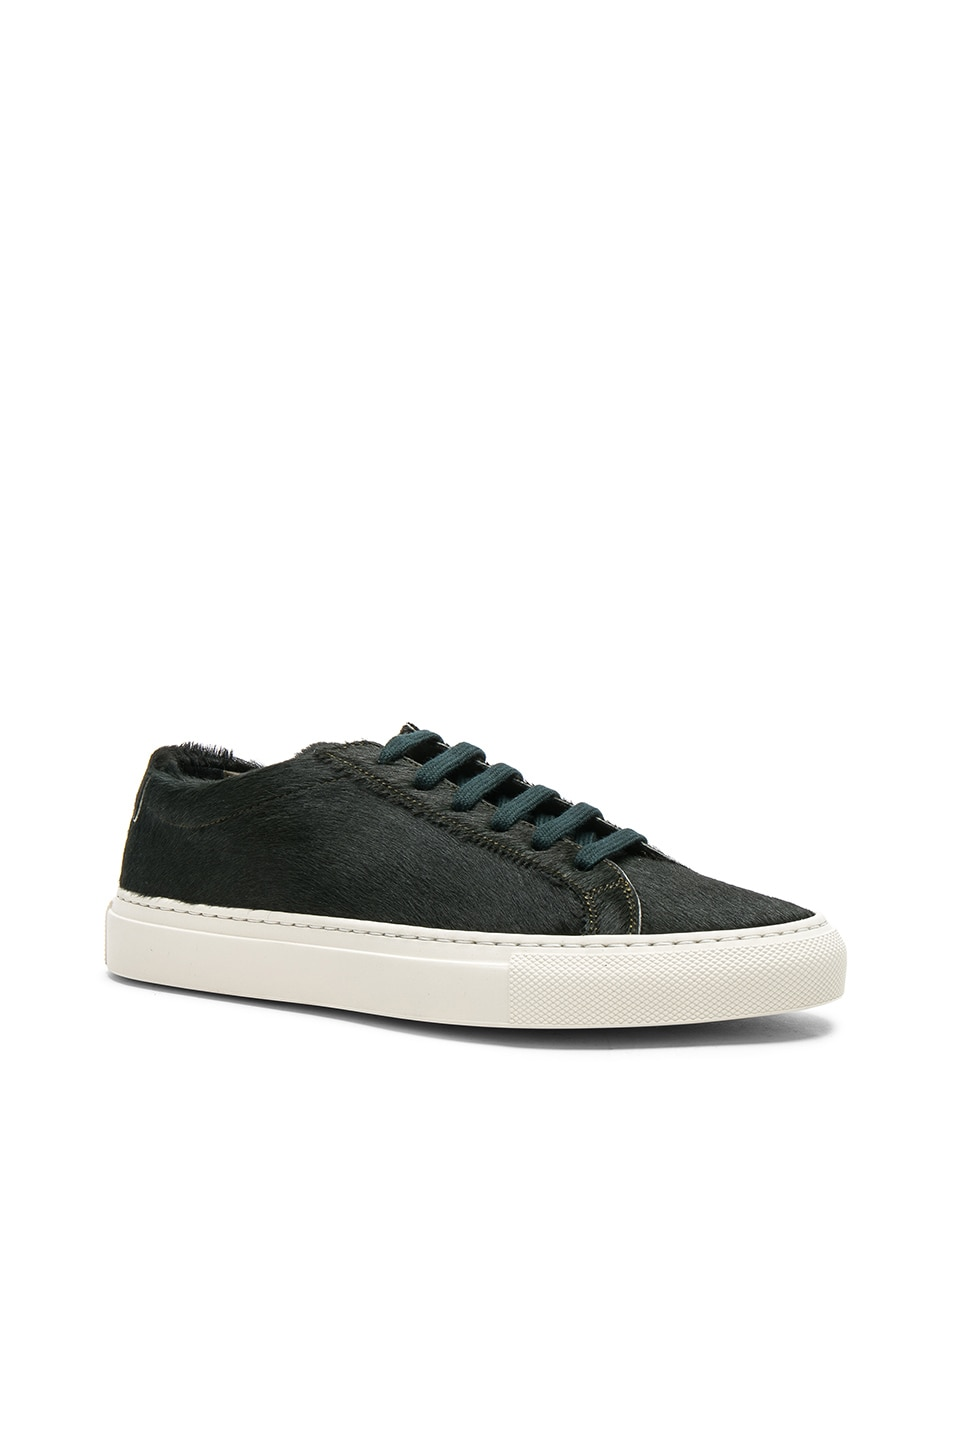 Image 2 of Common Projects Original Calf Hair Achilles Low in Green